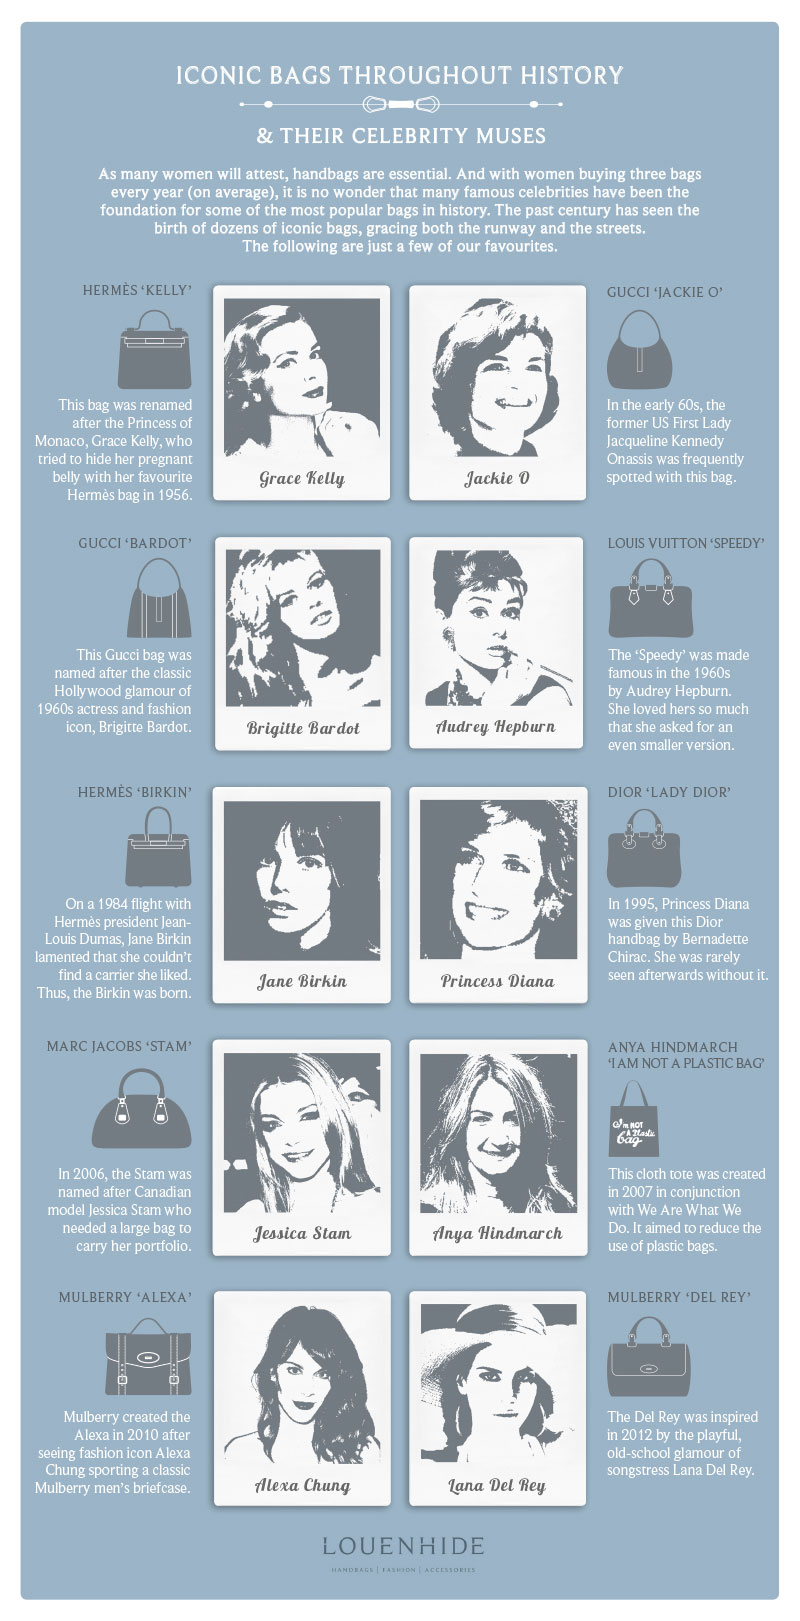 Iconic Bags Through History